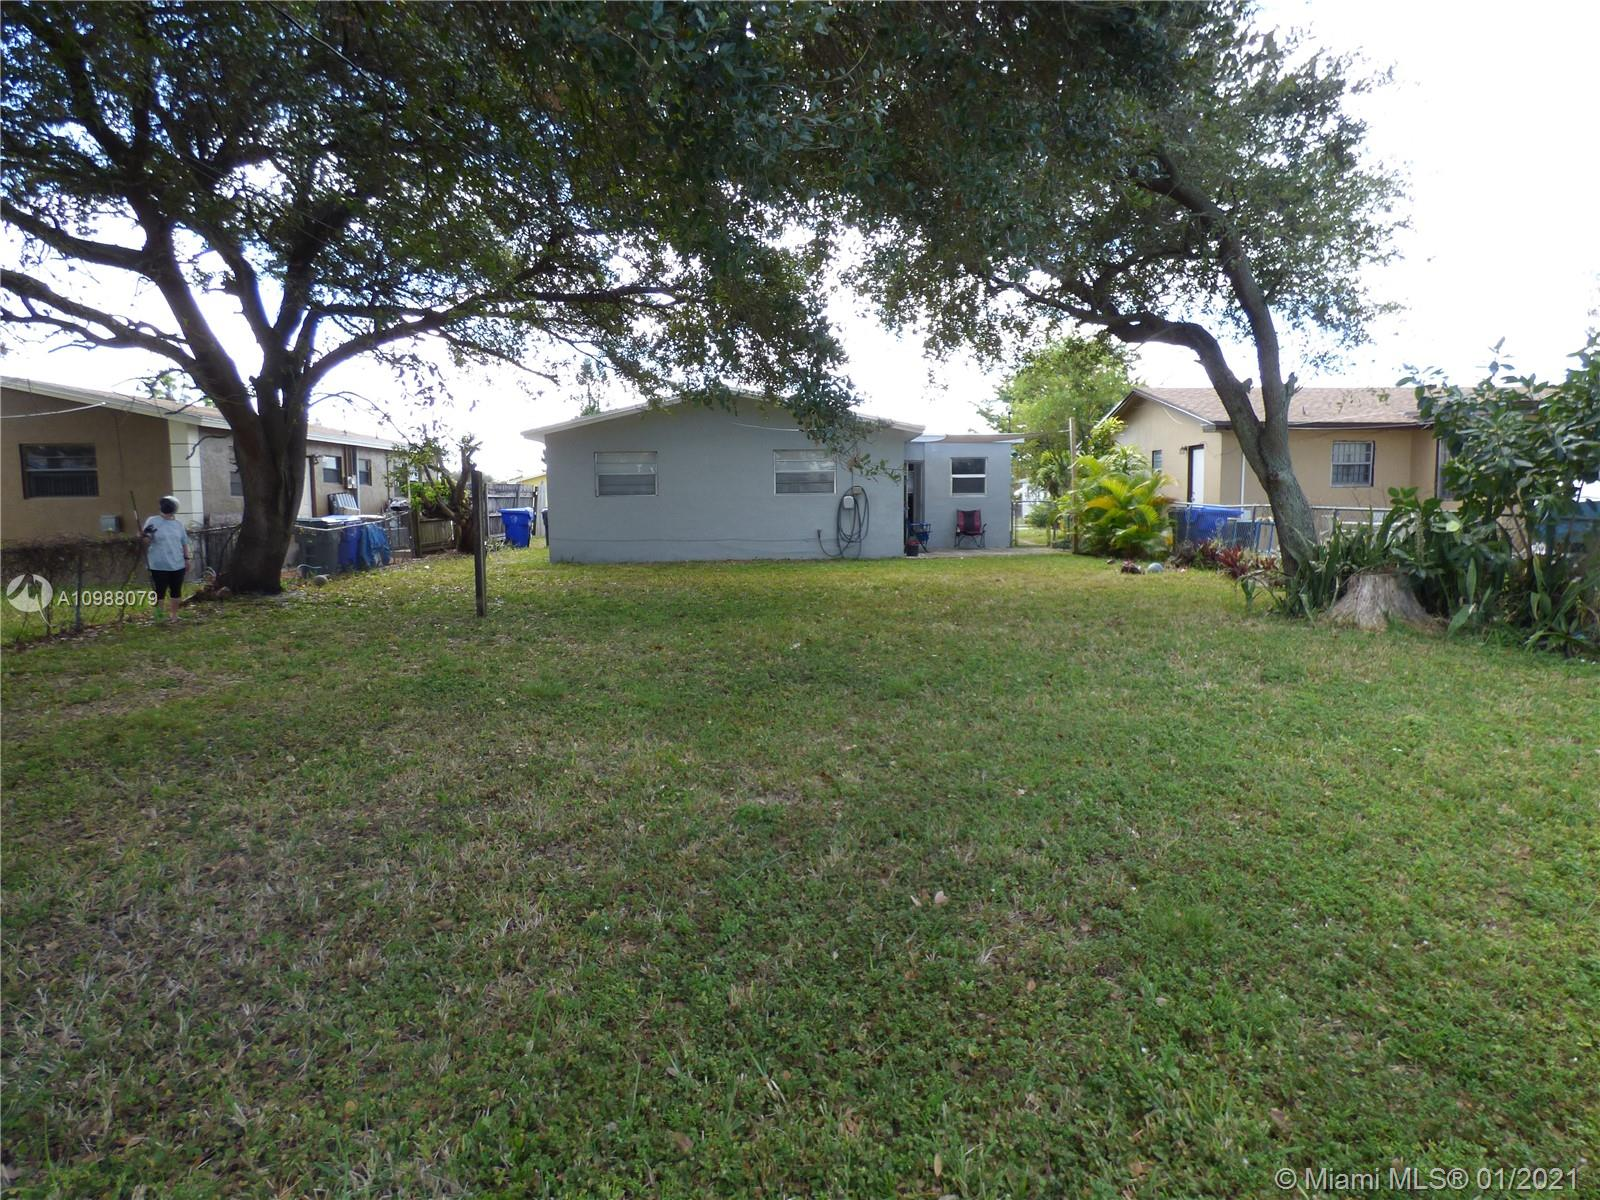 4605 SW 26th St, West Park, Florida 33023, 3 Bedrooms Bedrooms, ,2 BathroomsBathrooms,Residential,For Sale,4605 SW 26th St,A10988079